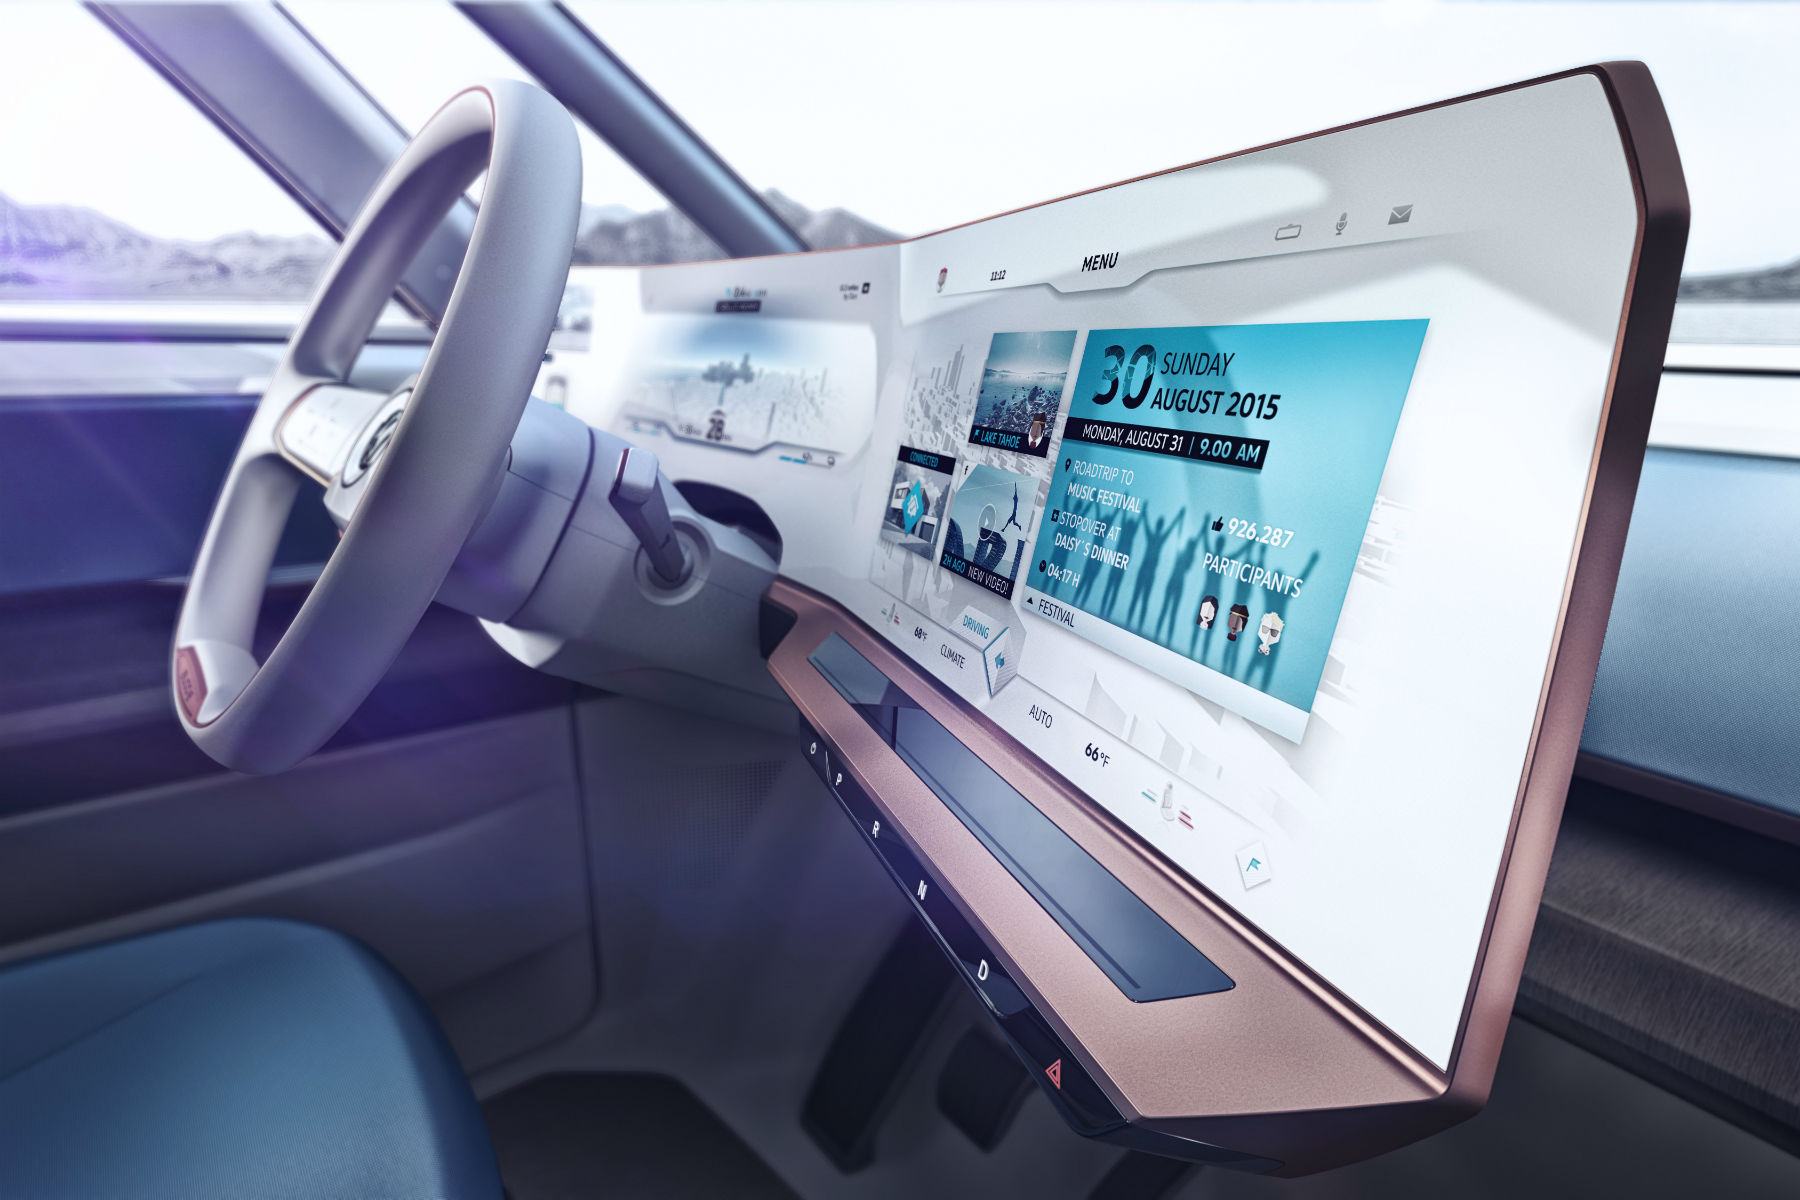 Would you trust Volkswagen with your connected data?